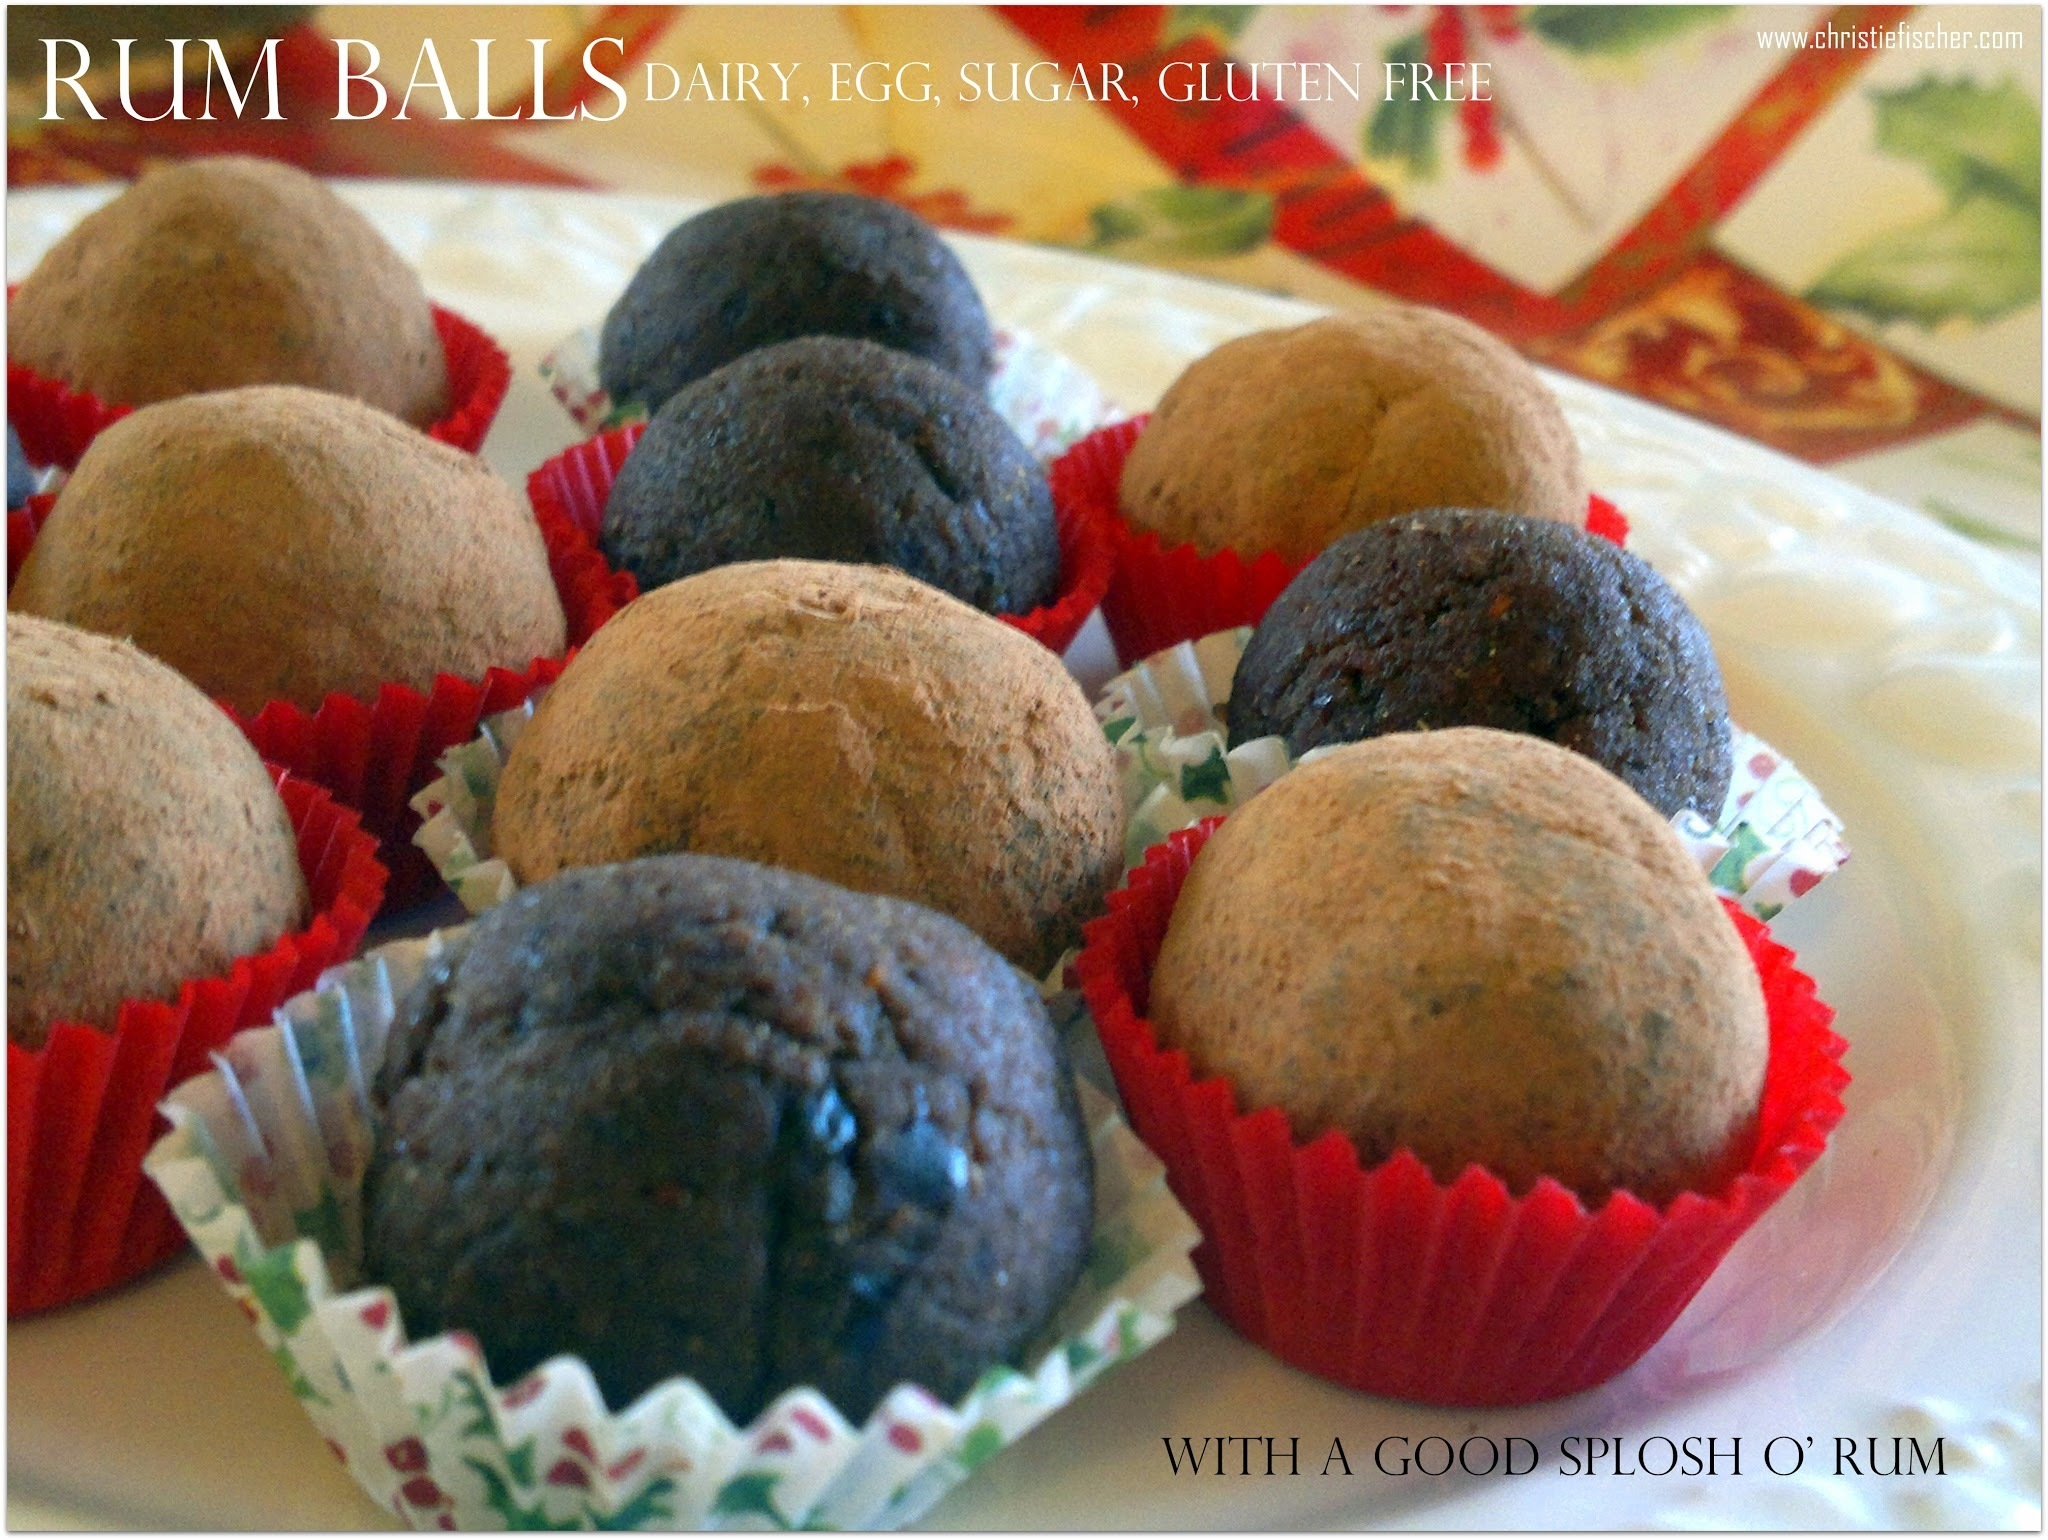 Fancy a Rum Ball? Oh Yes please!